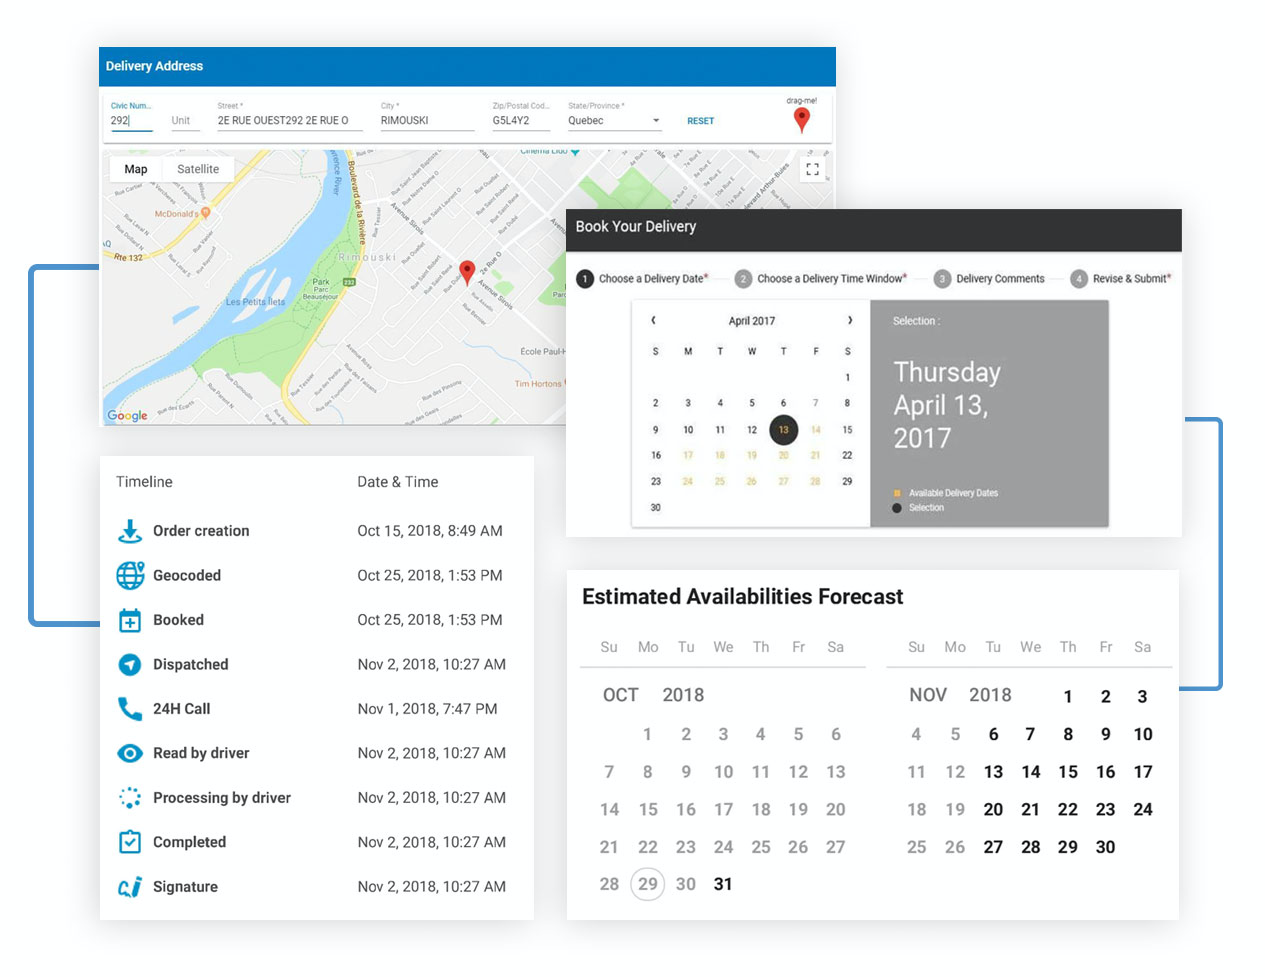 The delivery management and scheduling module can be integrated into eCommerce websites, booking apps and customer portals to allow flexible, personalized online bookings